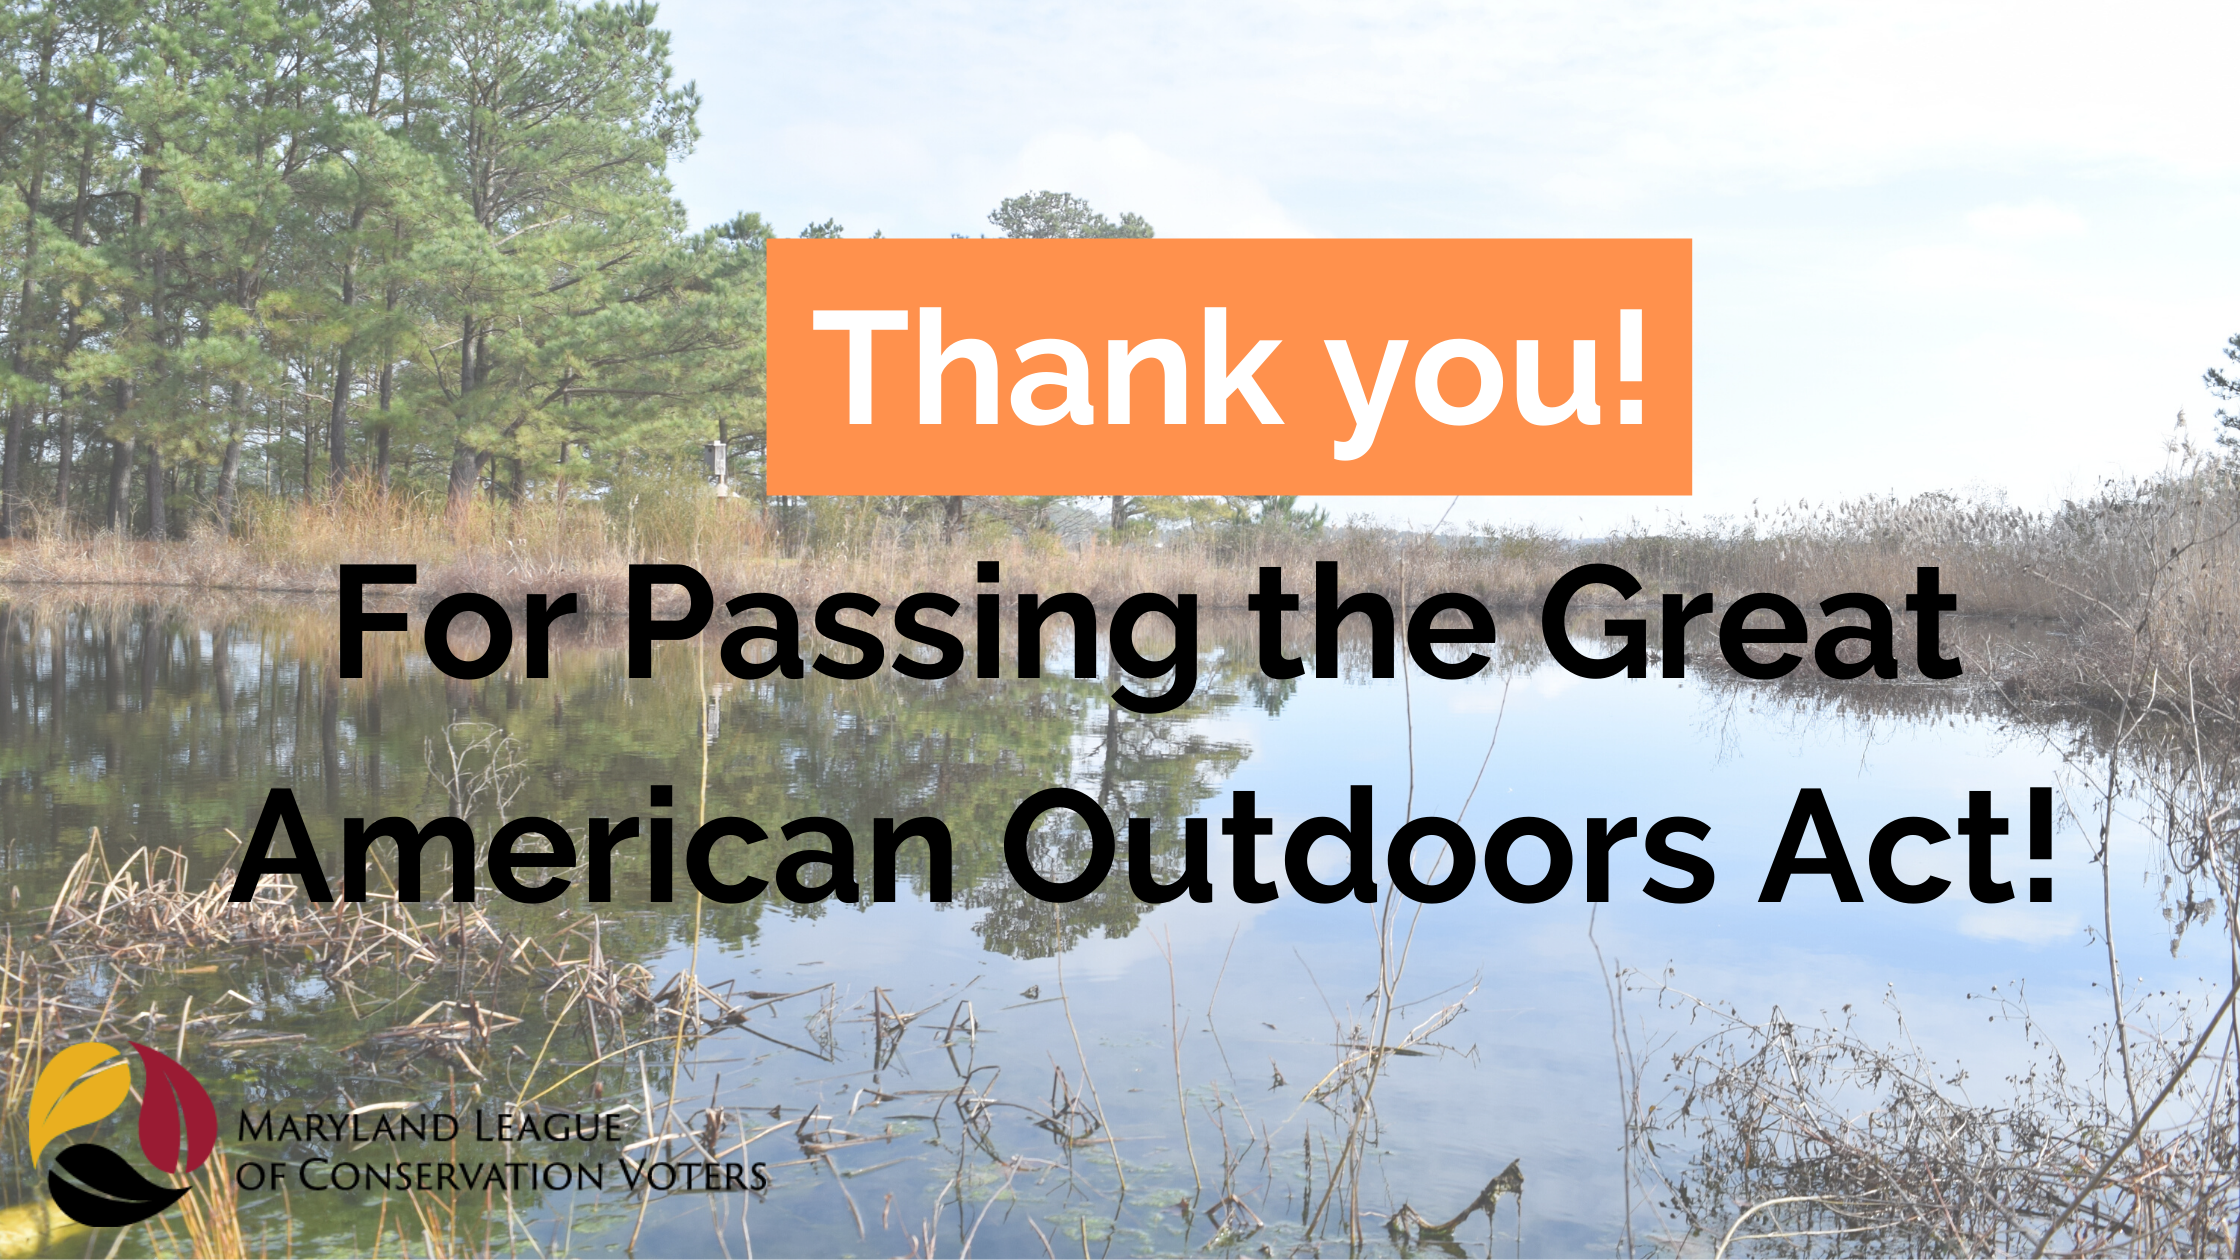 Thank you for passing the Great American Outdoors Act